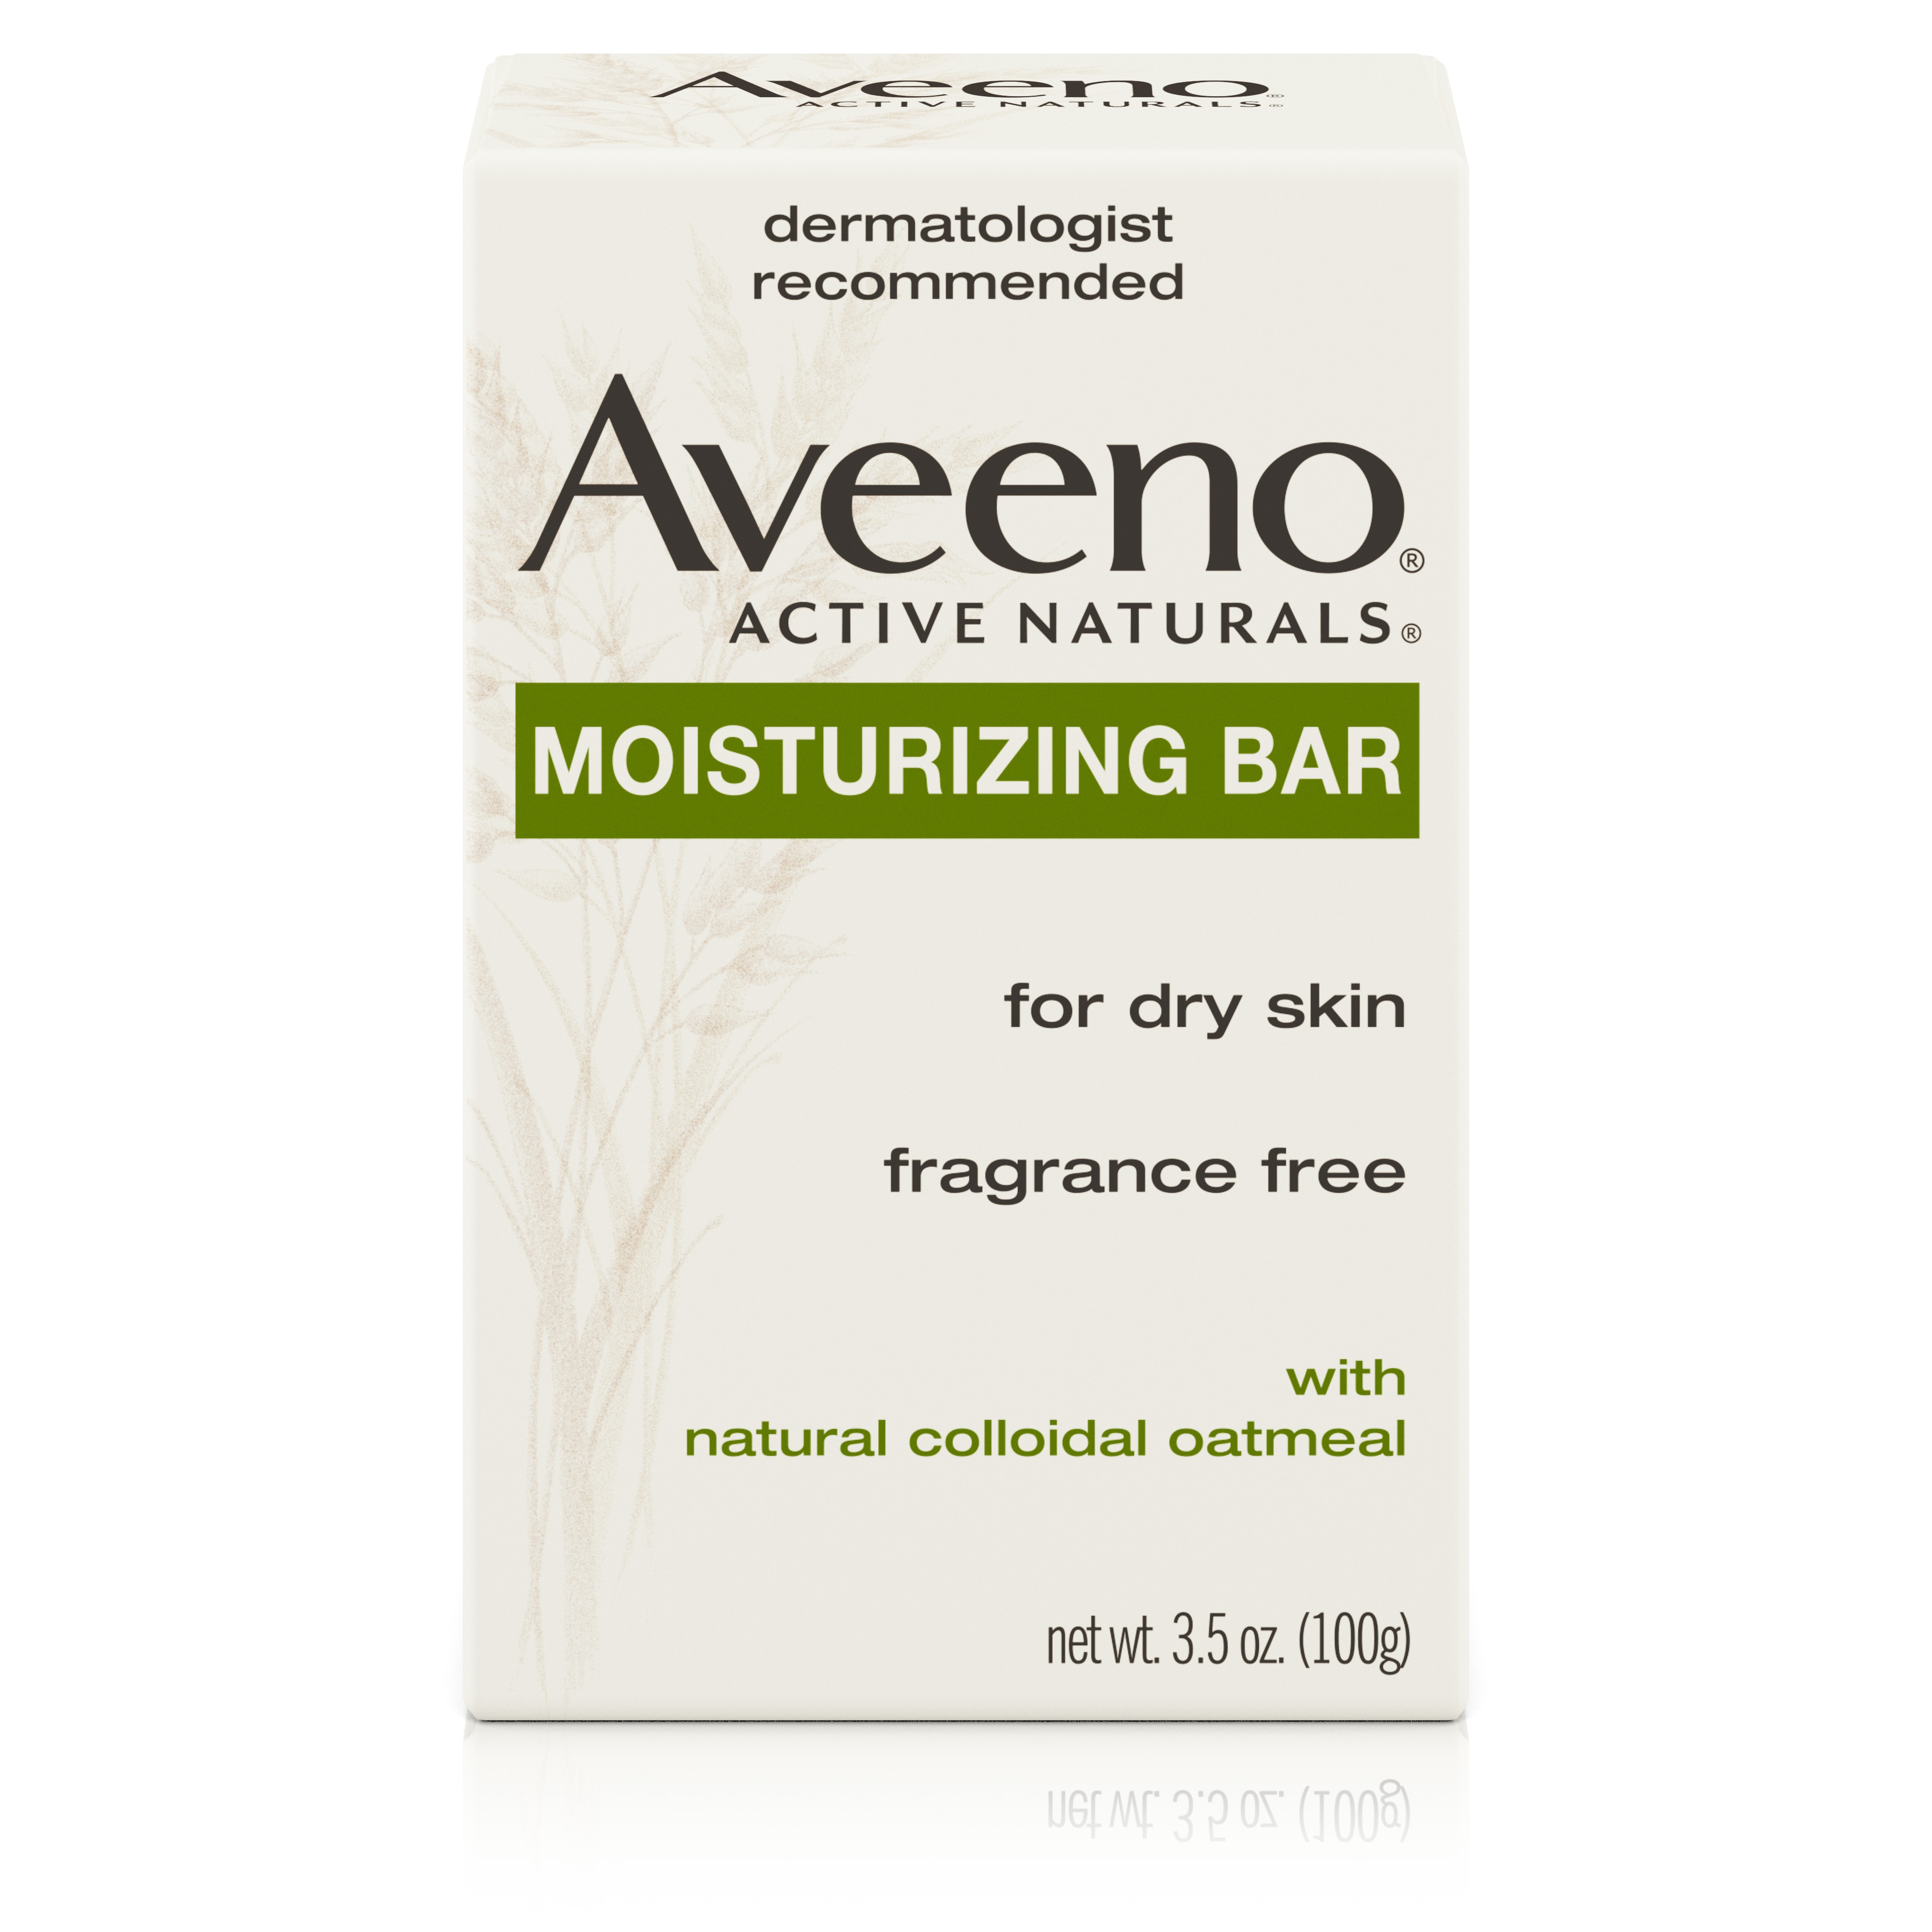 Aveeno Gentle Moisturizing Bar Facial Cleanser for Dry Skin, 3.5 oz